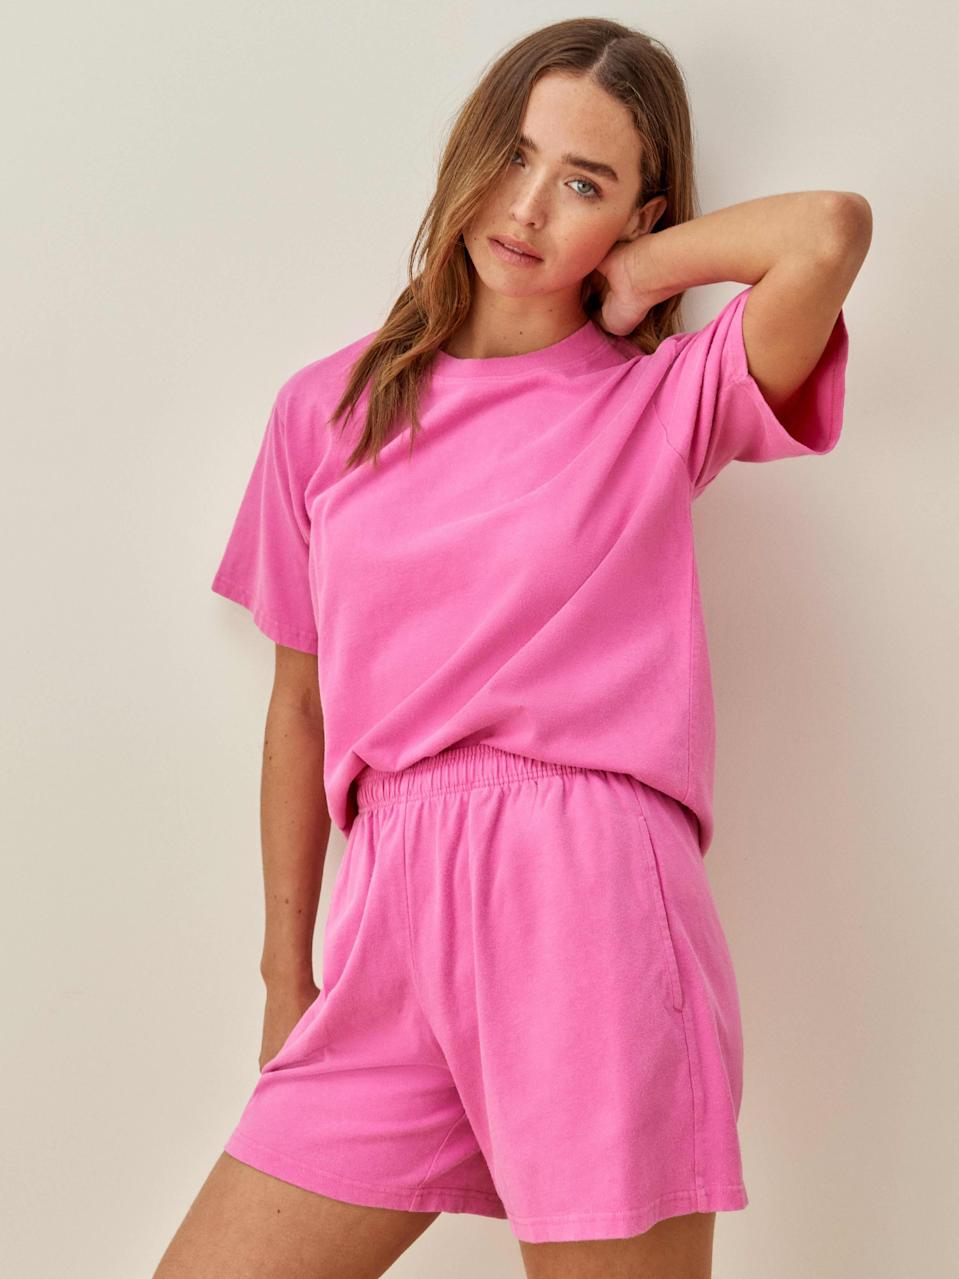 """These hot pink short are relaxed enough for lounging but also hella cute if you're trying to get a pic for your feed. Thanks, Ref. $58, Reformation. <a href=""""https://www.thereformation.com/products/boyfriend-knit-short?color=Shocking+Pink"""" rel=""""nofollow noopener"""" target=""""_blank"""" data-ylk=""""slk:Get it now!"""" class=""""link rapid-noclick-resp"""">Get it now!</a>"""